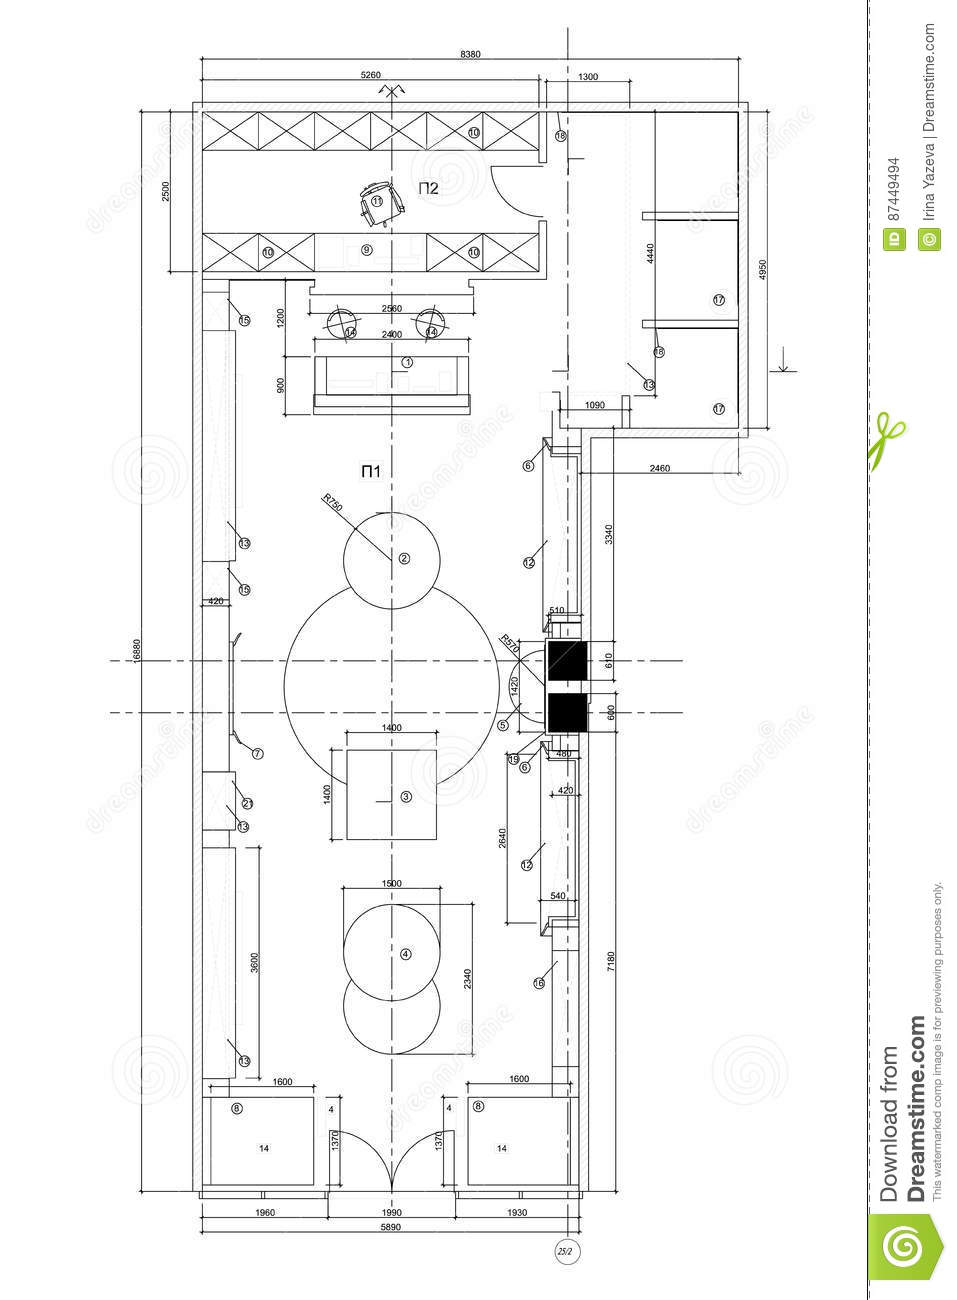 drawing furniture plans. Standard Furniture Symbols Used In Architecture Plans Icons Set, Office  Planning Icon Graphic Design Elements. Small Shop Room - Top View . Drawing N